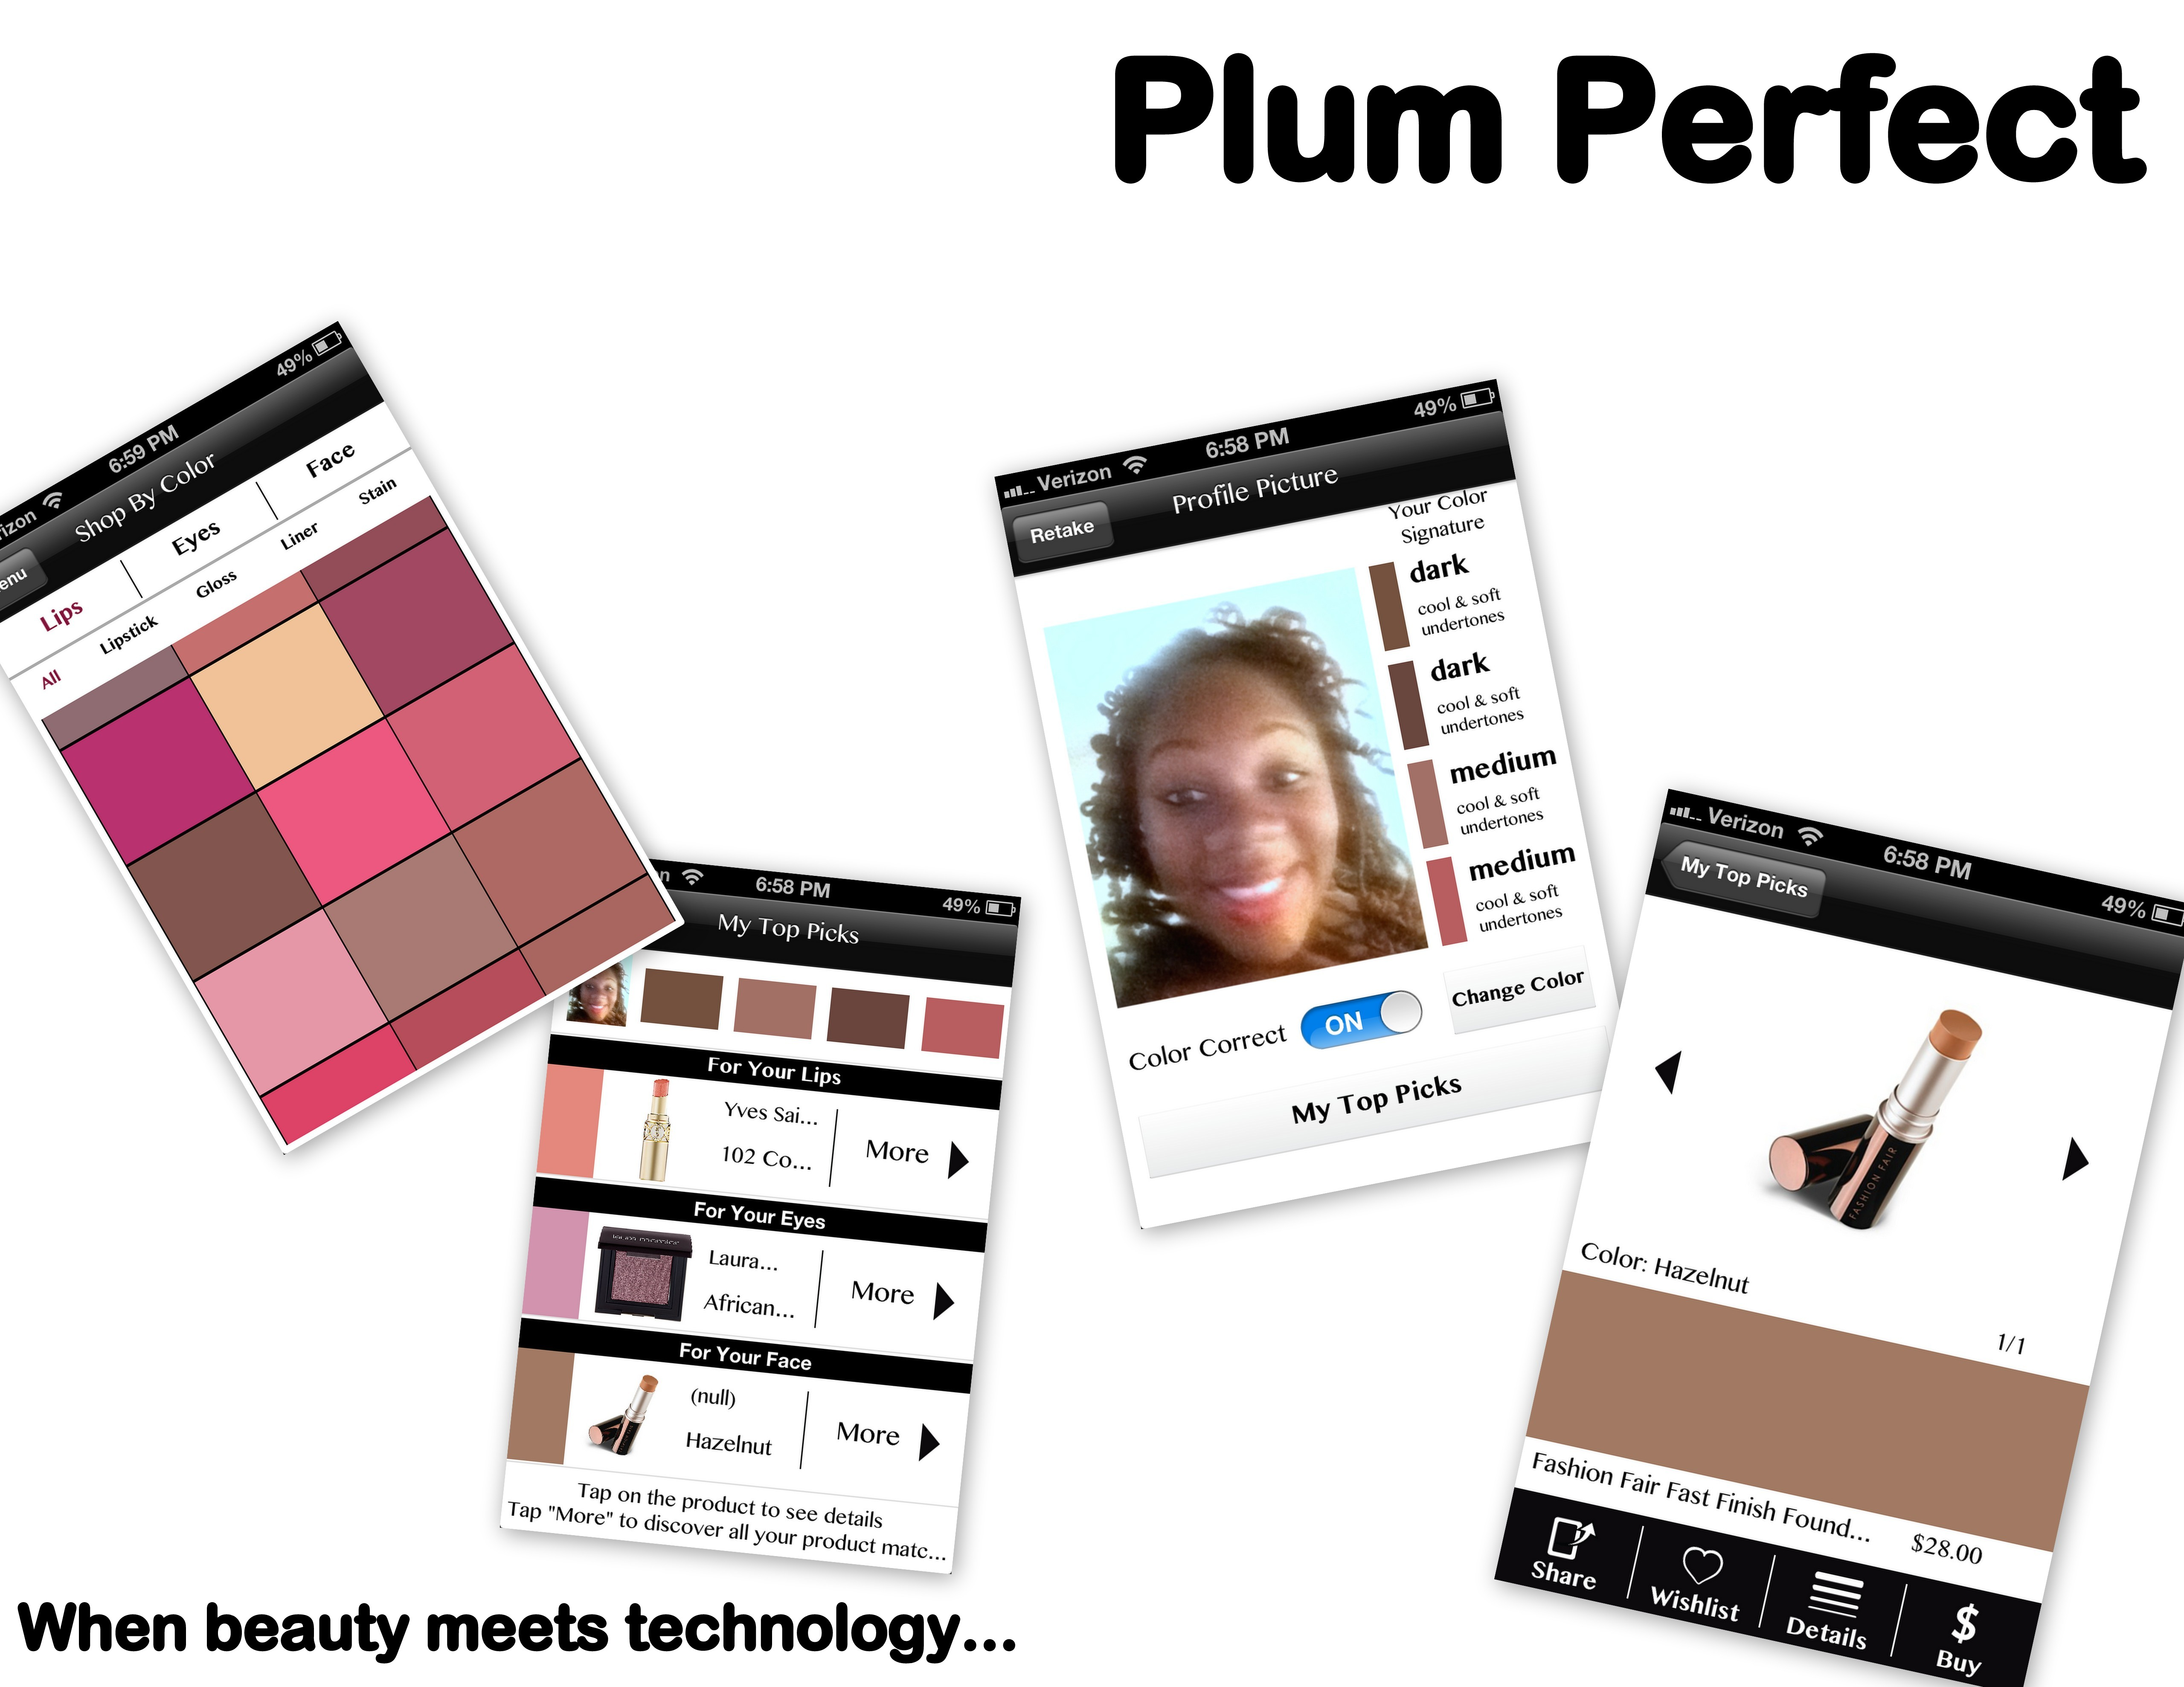 Plum Perfect – An App for Beauty Junkies